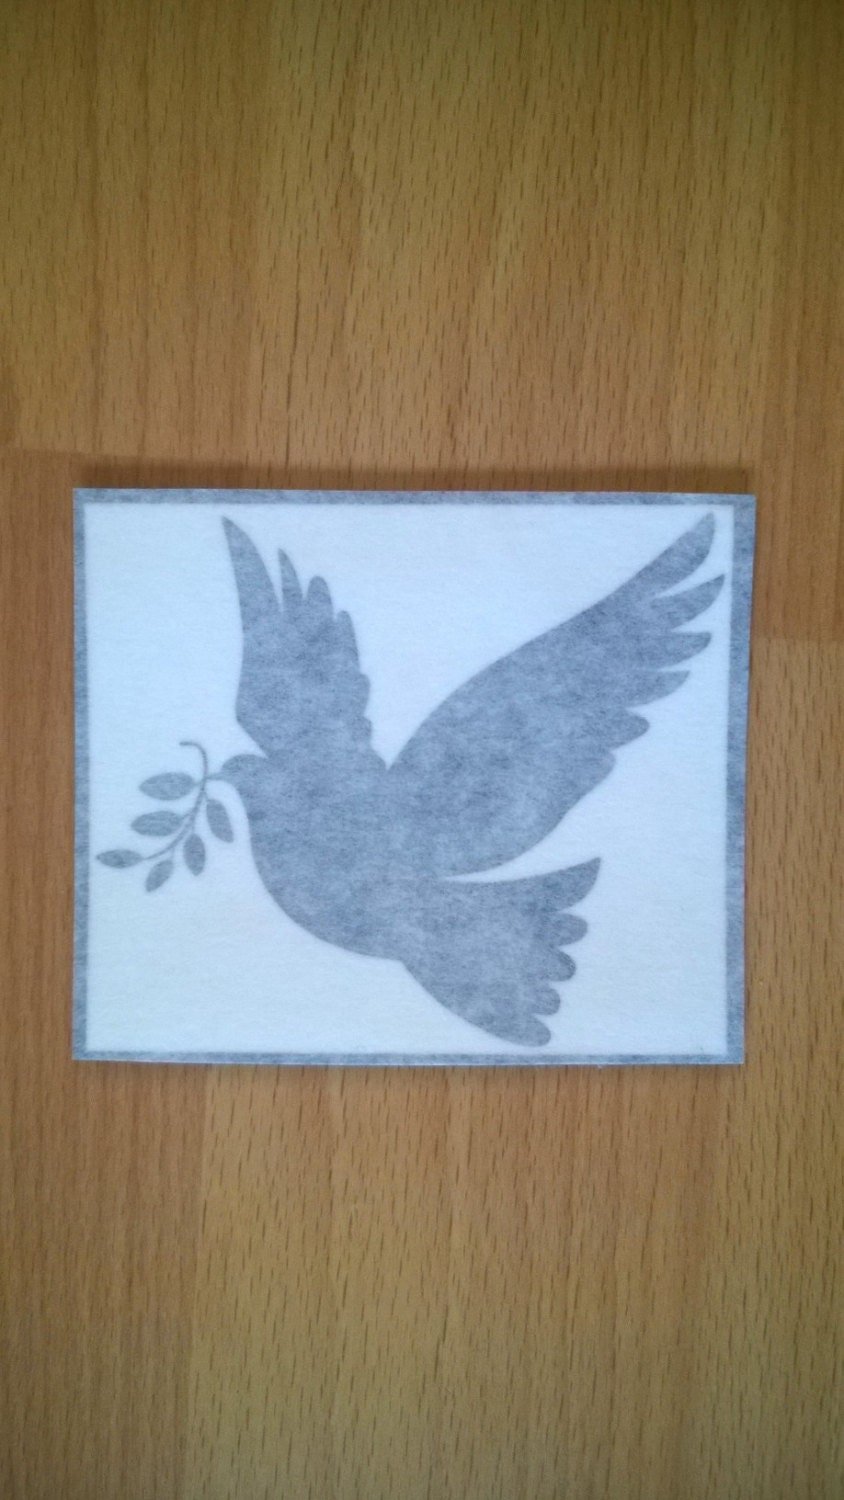 SALE DECALS  Doves of Peace   Wall Art  Decal  Sticker  7.9cm x 6.8cm  Black  Only 6 Available Walls Laptops Doors Tablets Phones